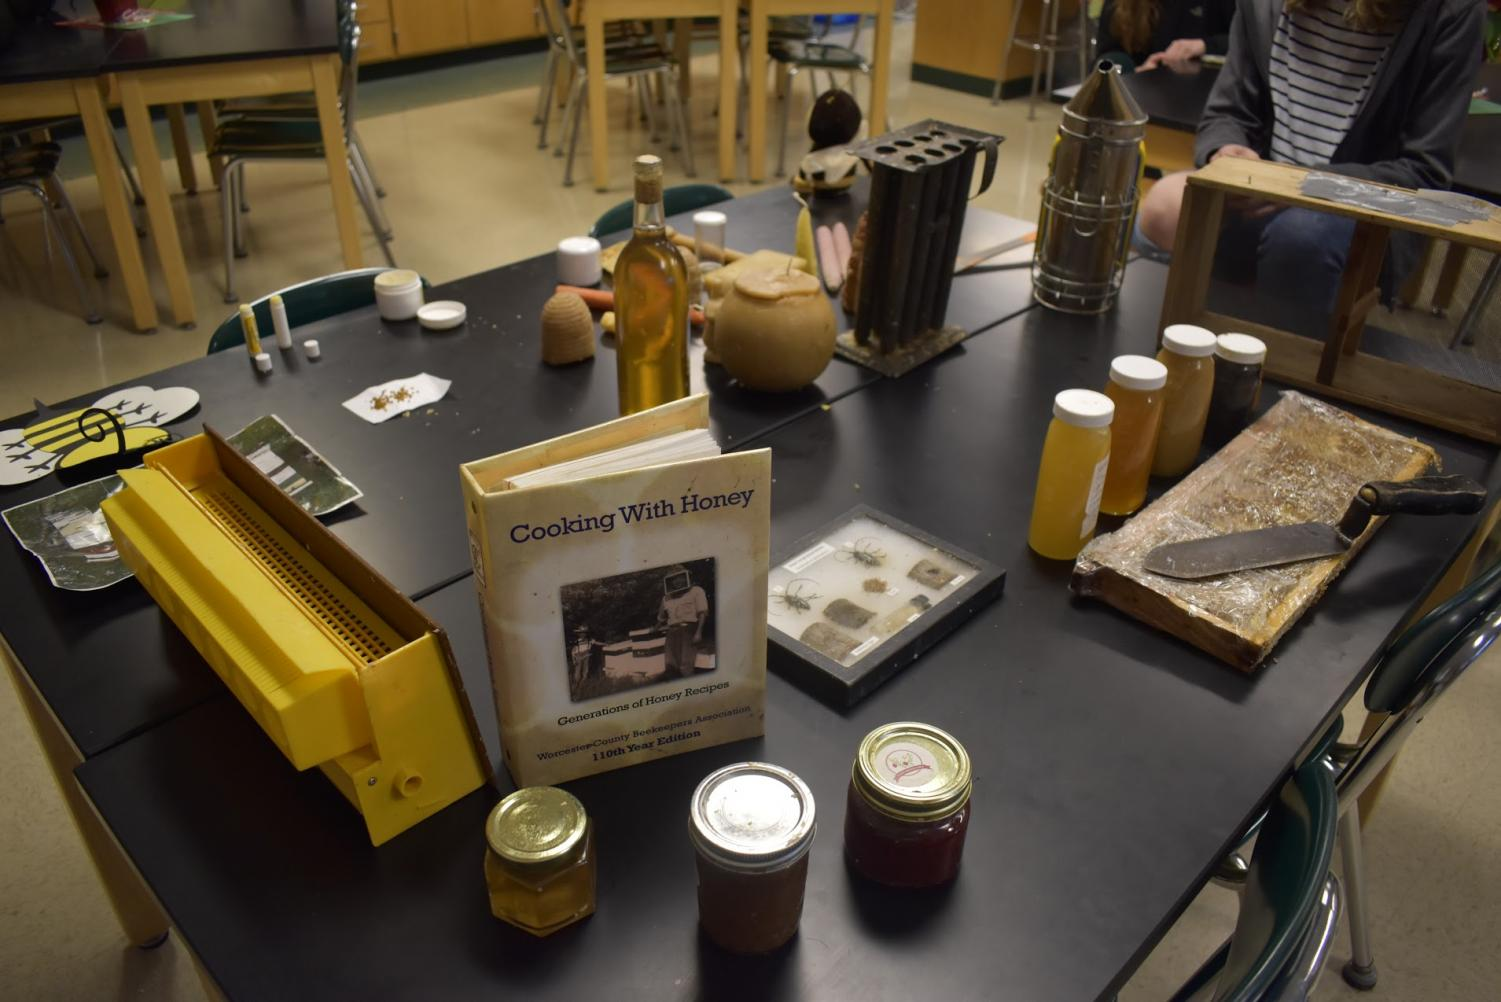 Bee-keeping related items such as honey and recipe books are often used during meetings after school most Tuesdays in D216.